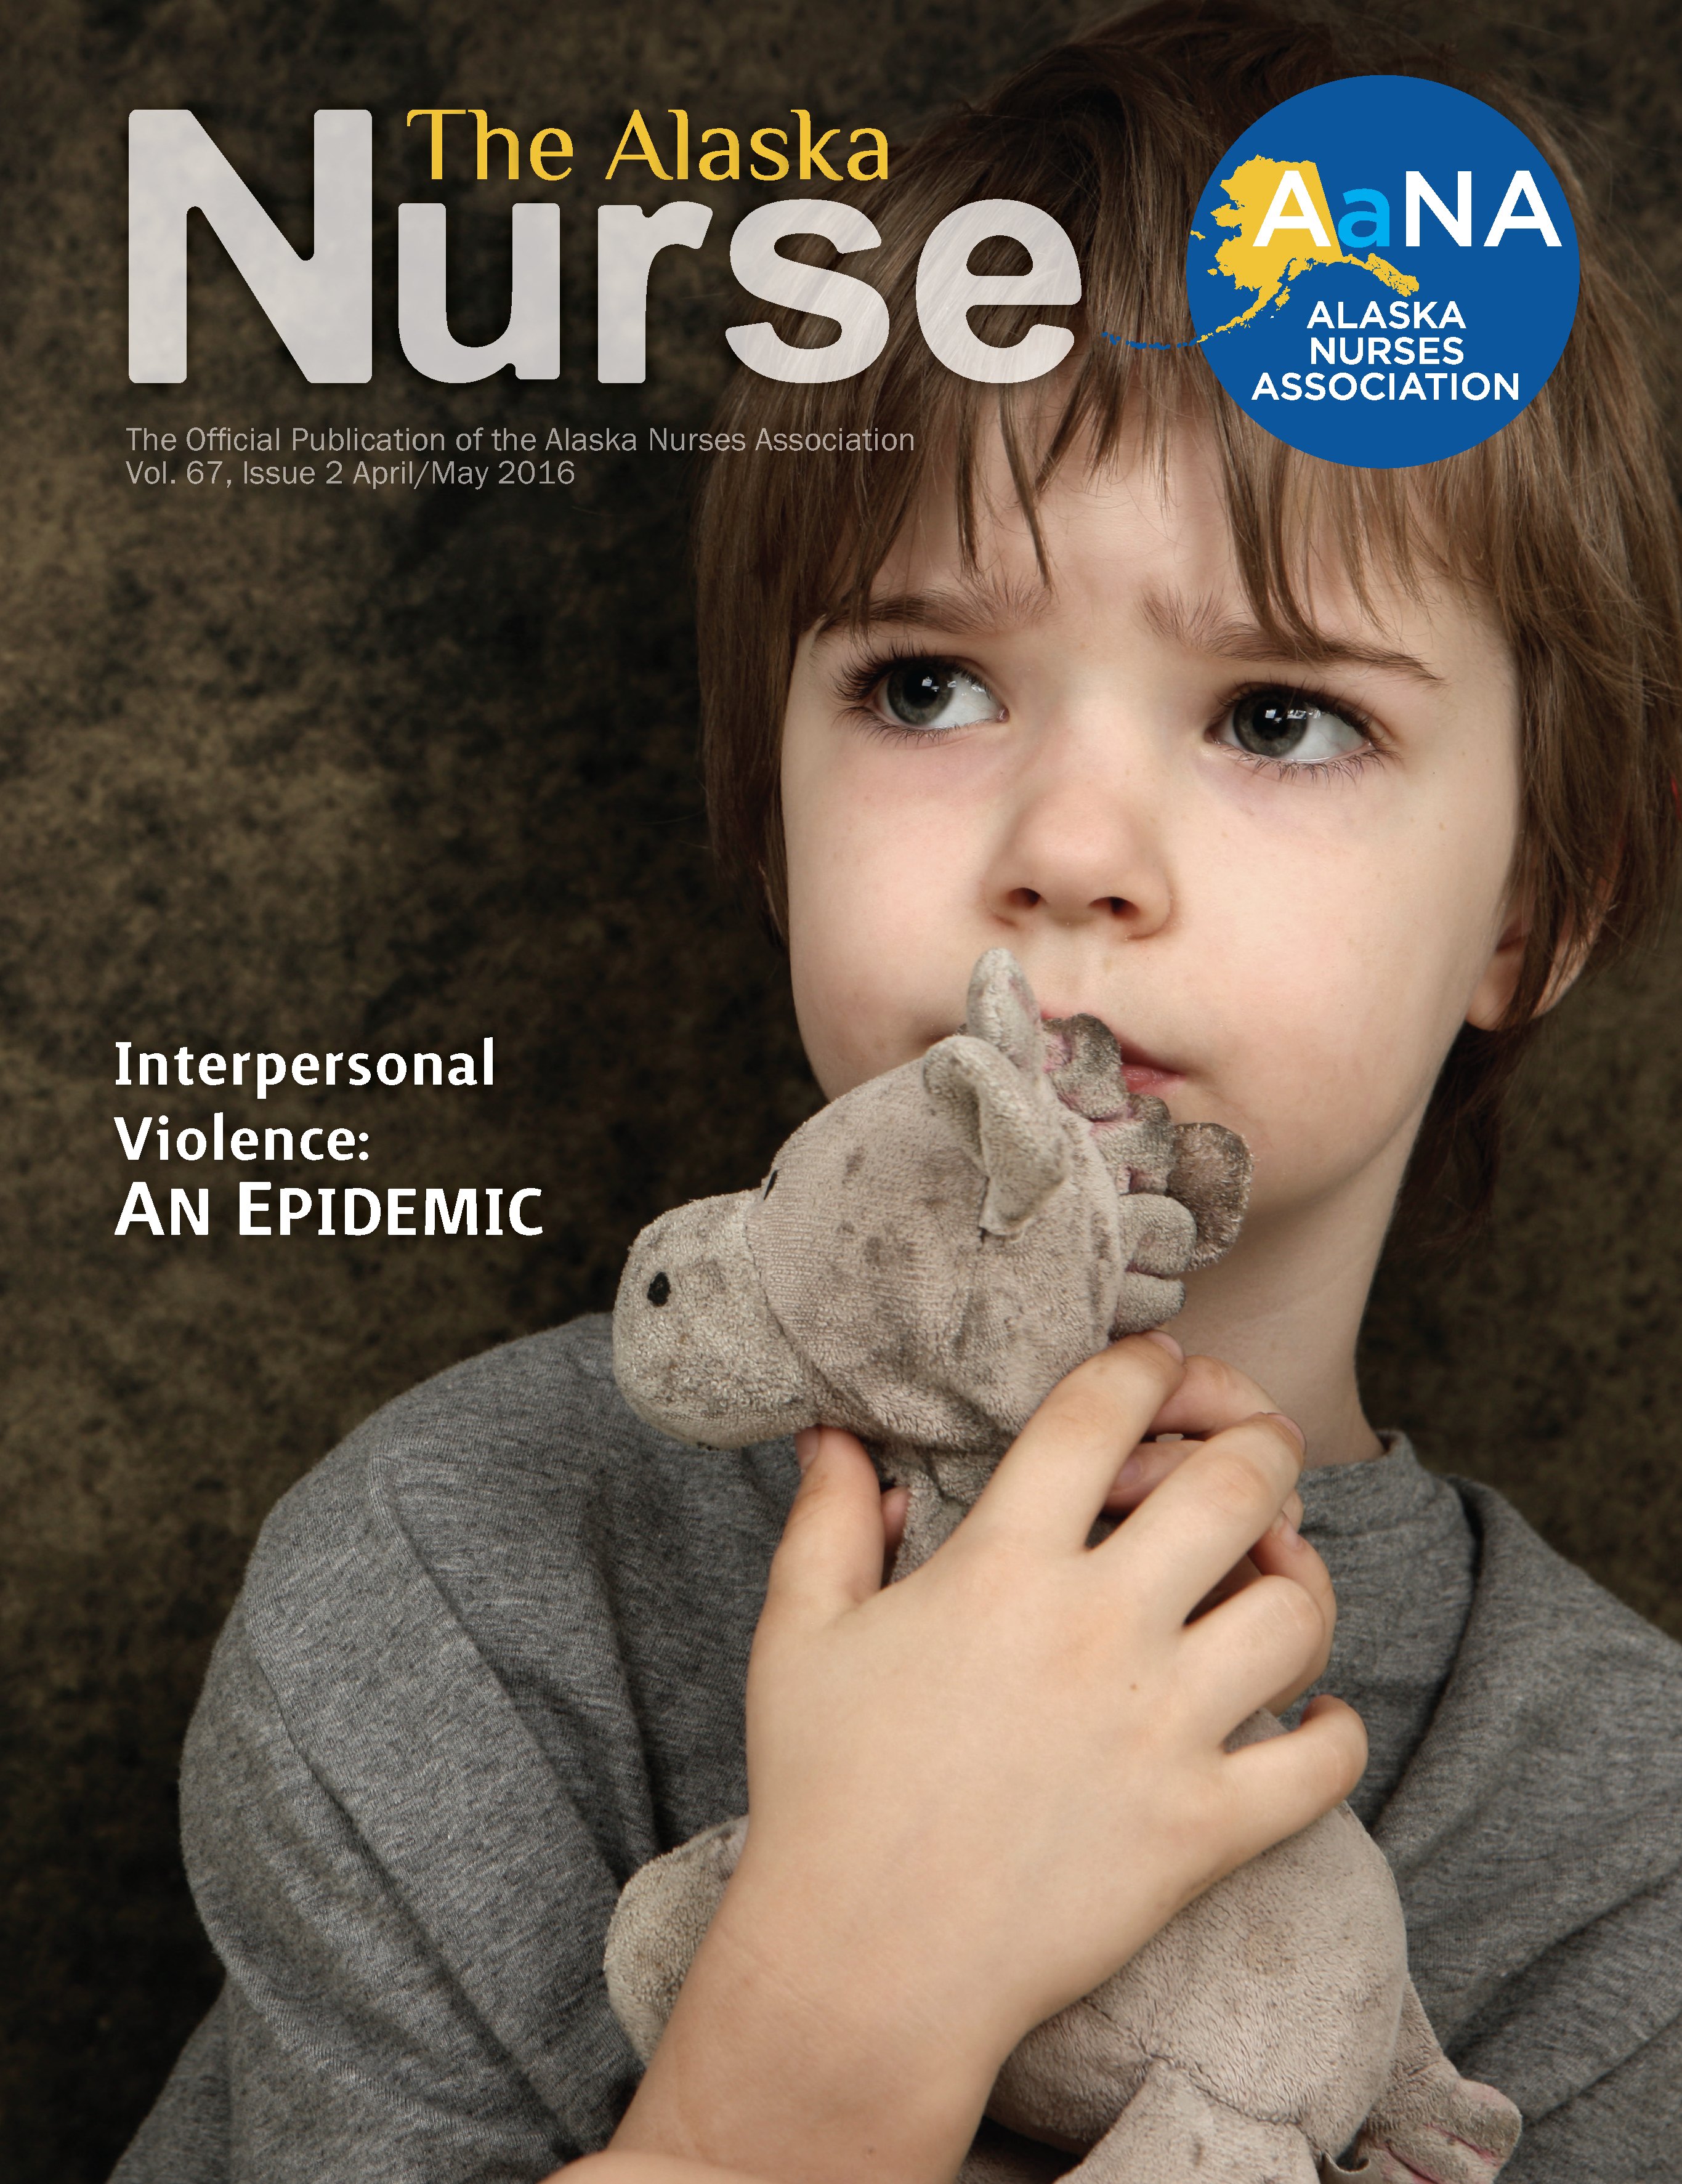 Click here to read the latest issue of The Alaska Nurse